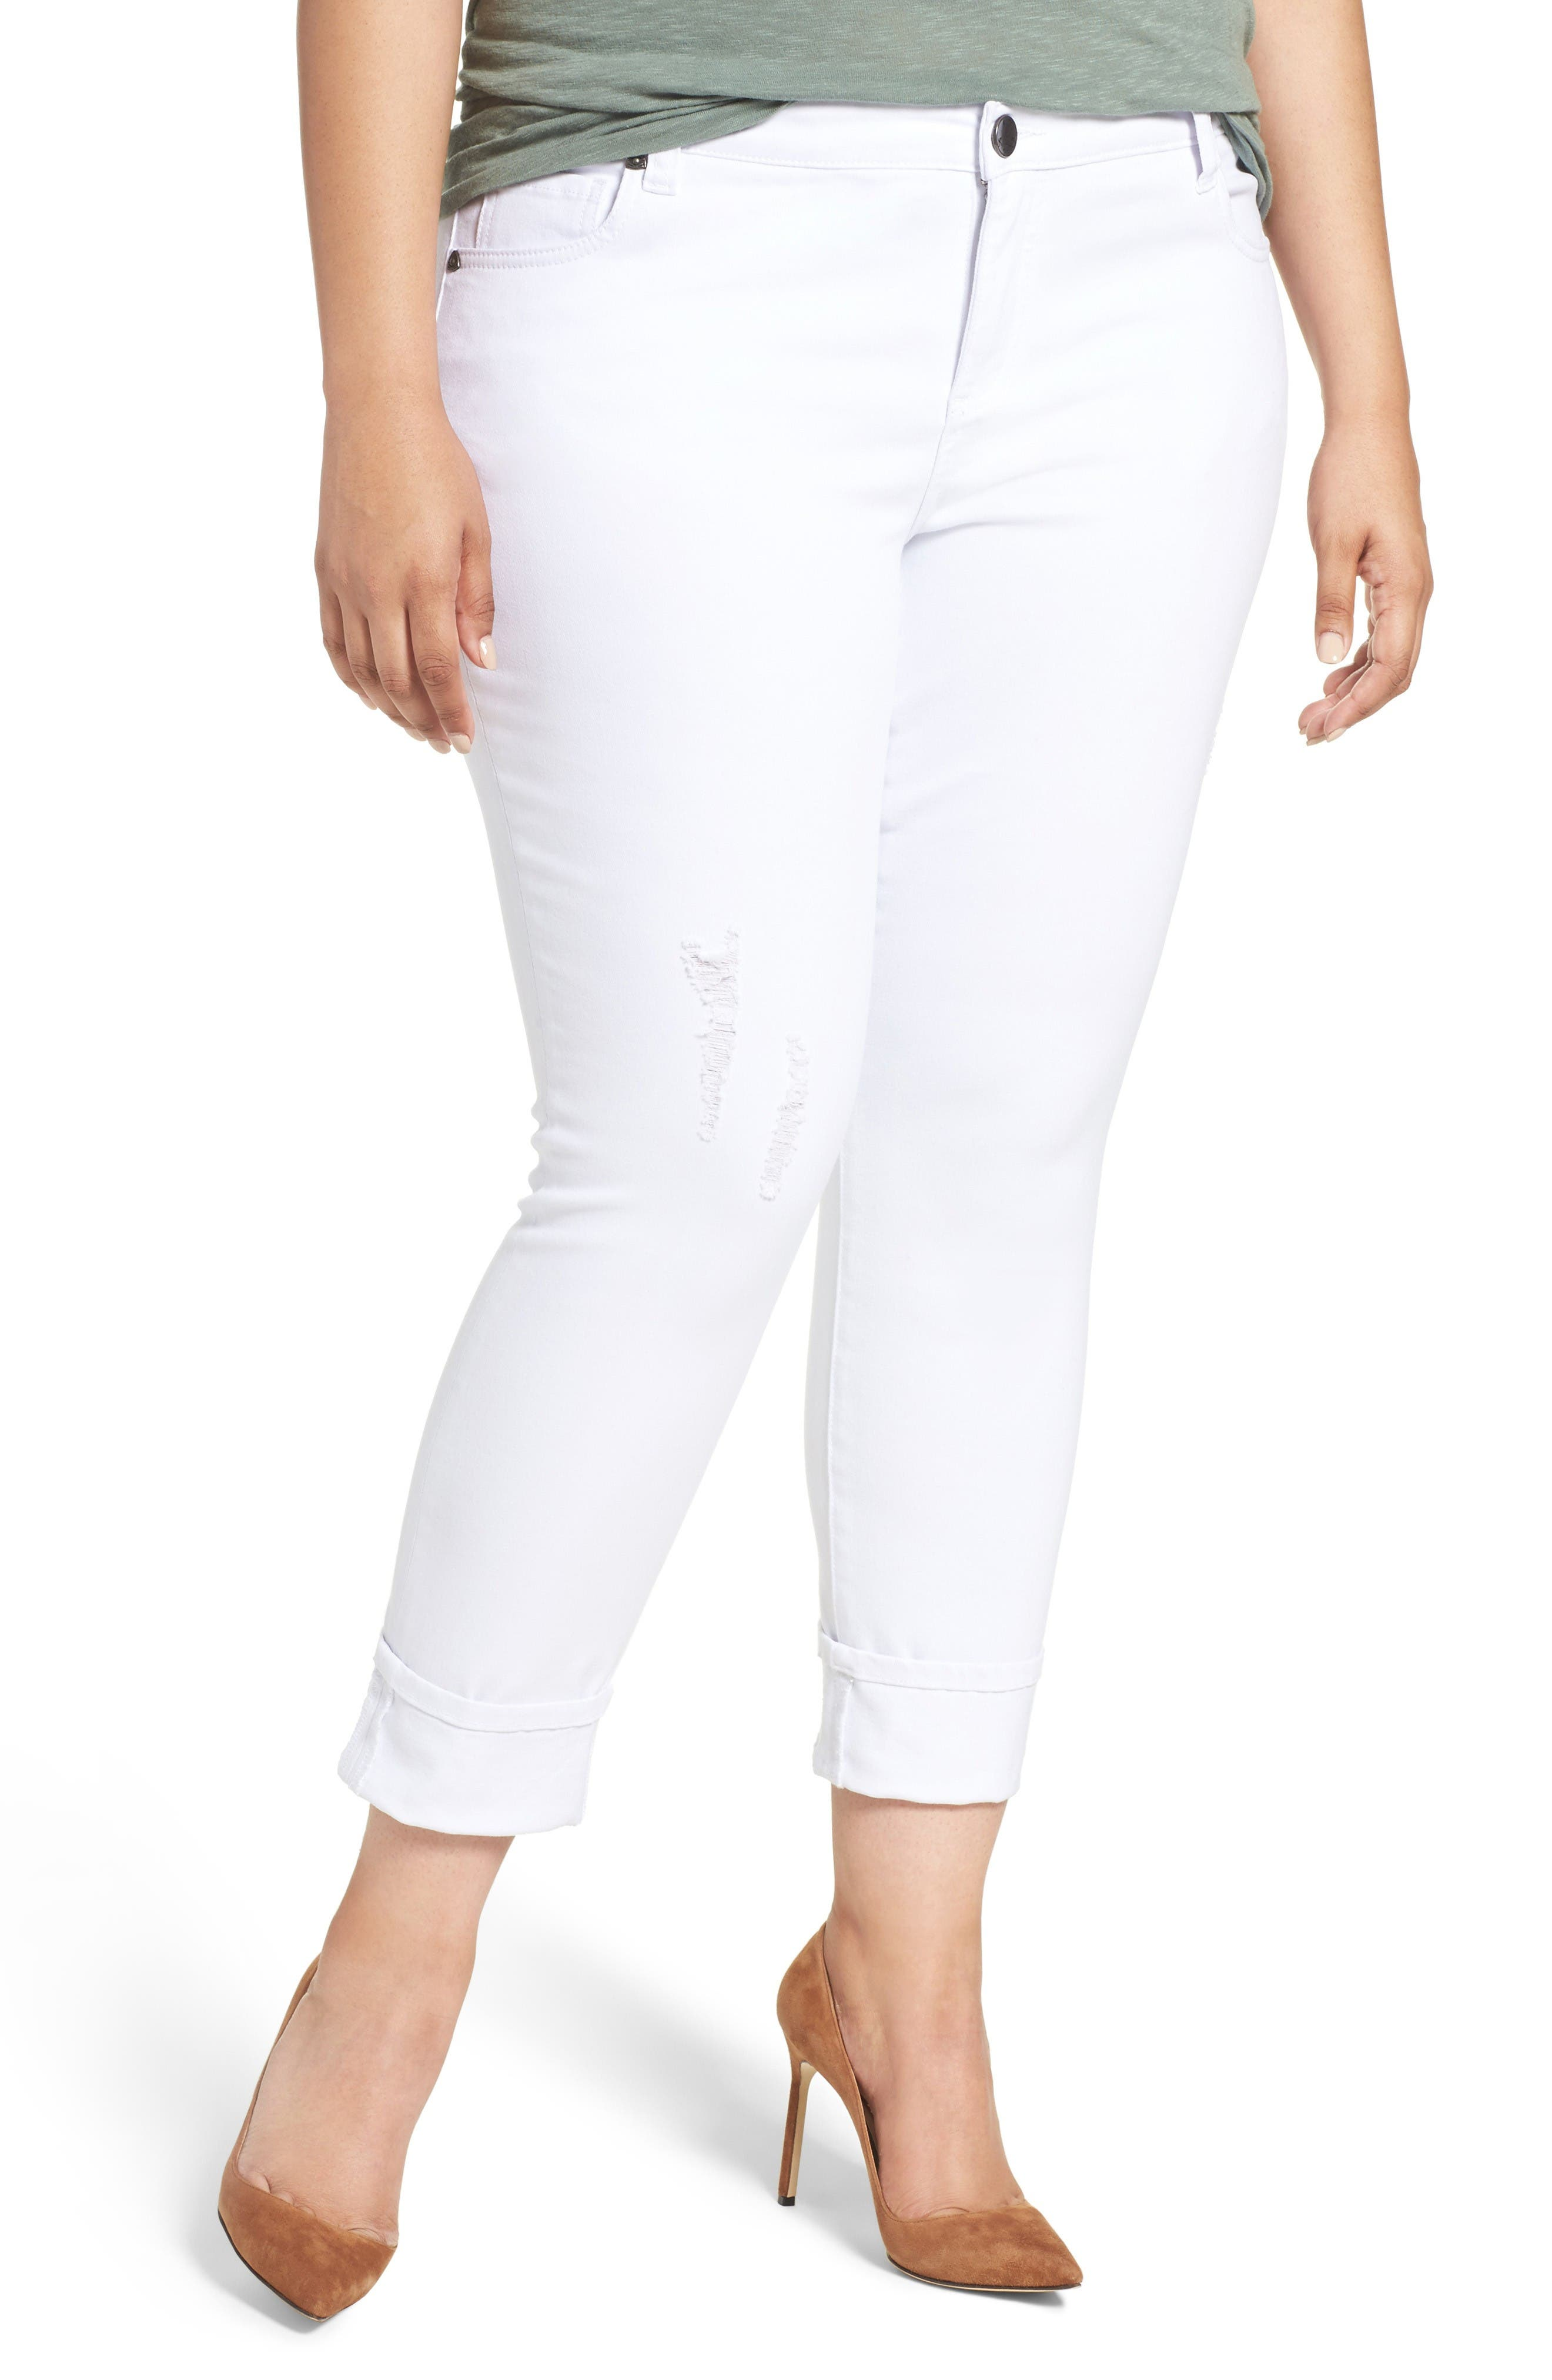 Main Image - KUT from the Kloth Catherine Distressed Wide Cuff Boyfriend Jeans (Optic White) (Plus Size)